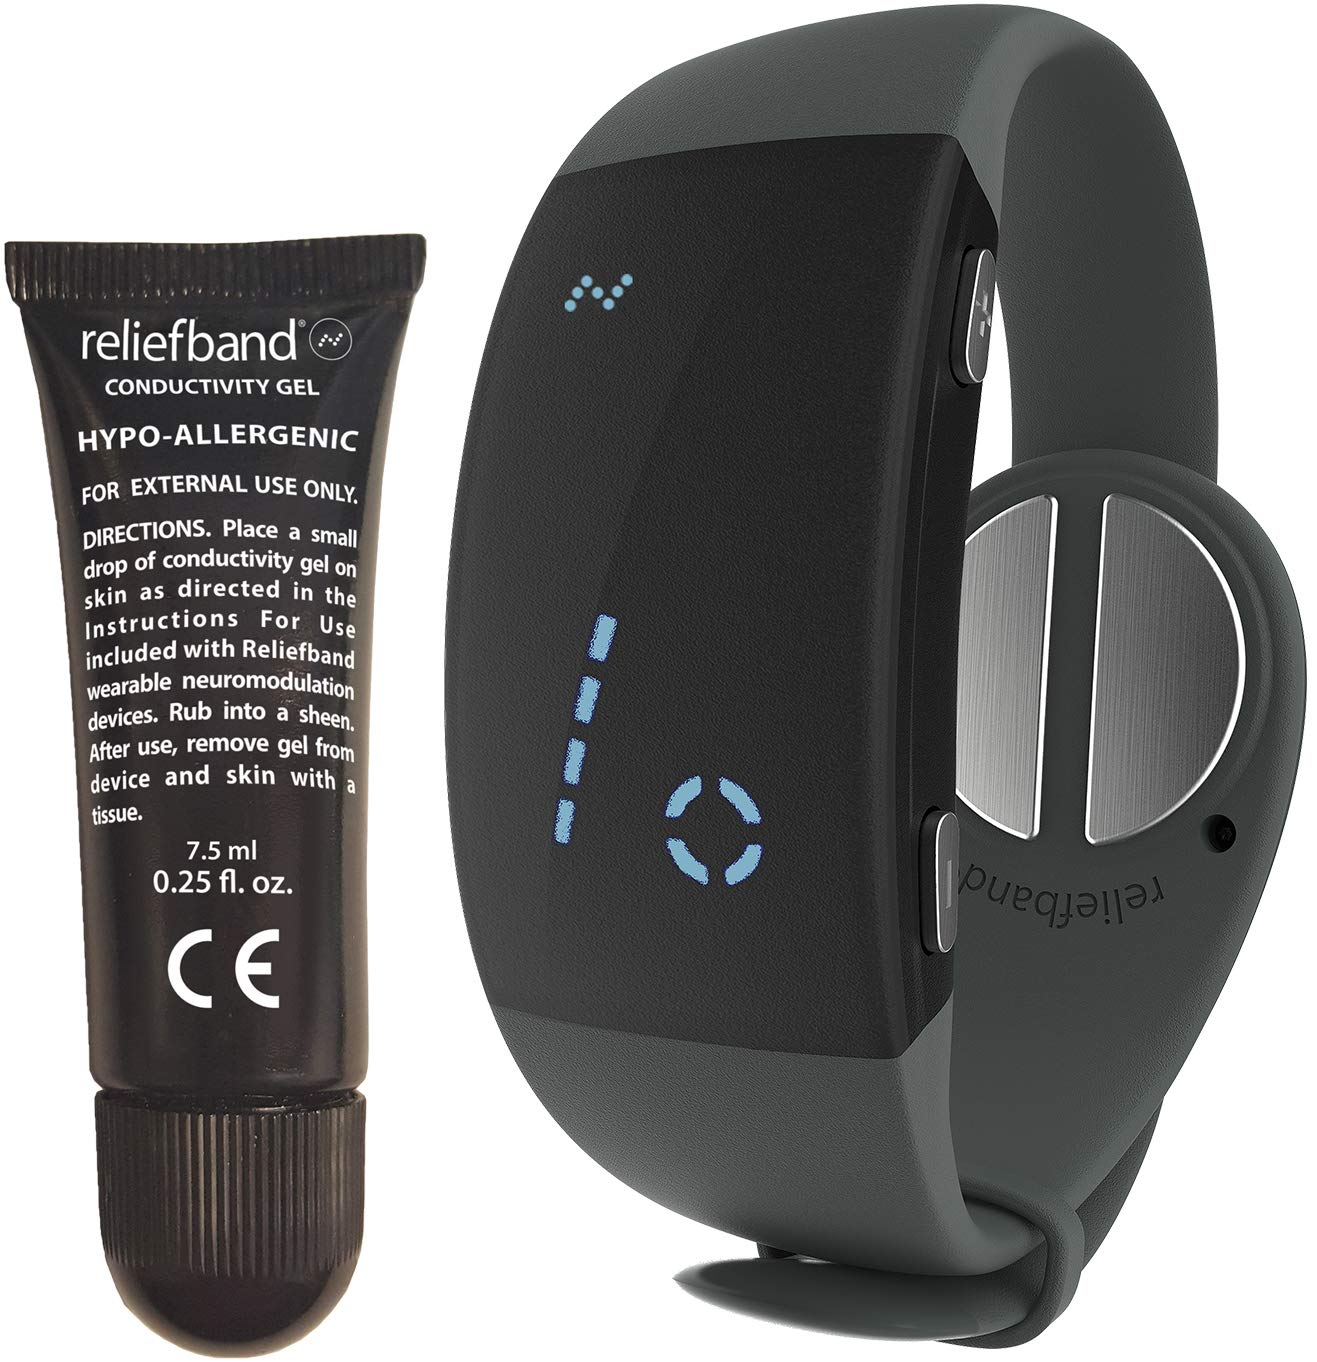 Reliefband 2.0 Motion Sickness Wristband - Updated w/New Features - Increased Battery Life - Easy-to-Use, Fast, Drug-Free Nausea Relief Band Helps w/Nausea & Vomiting (USB Charging Cable, Charcoal) by Reliefband